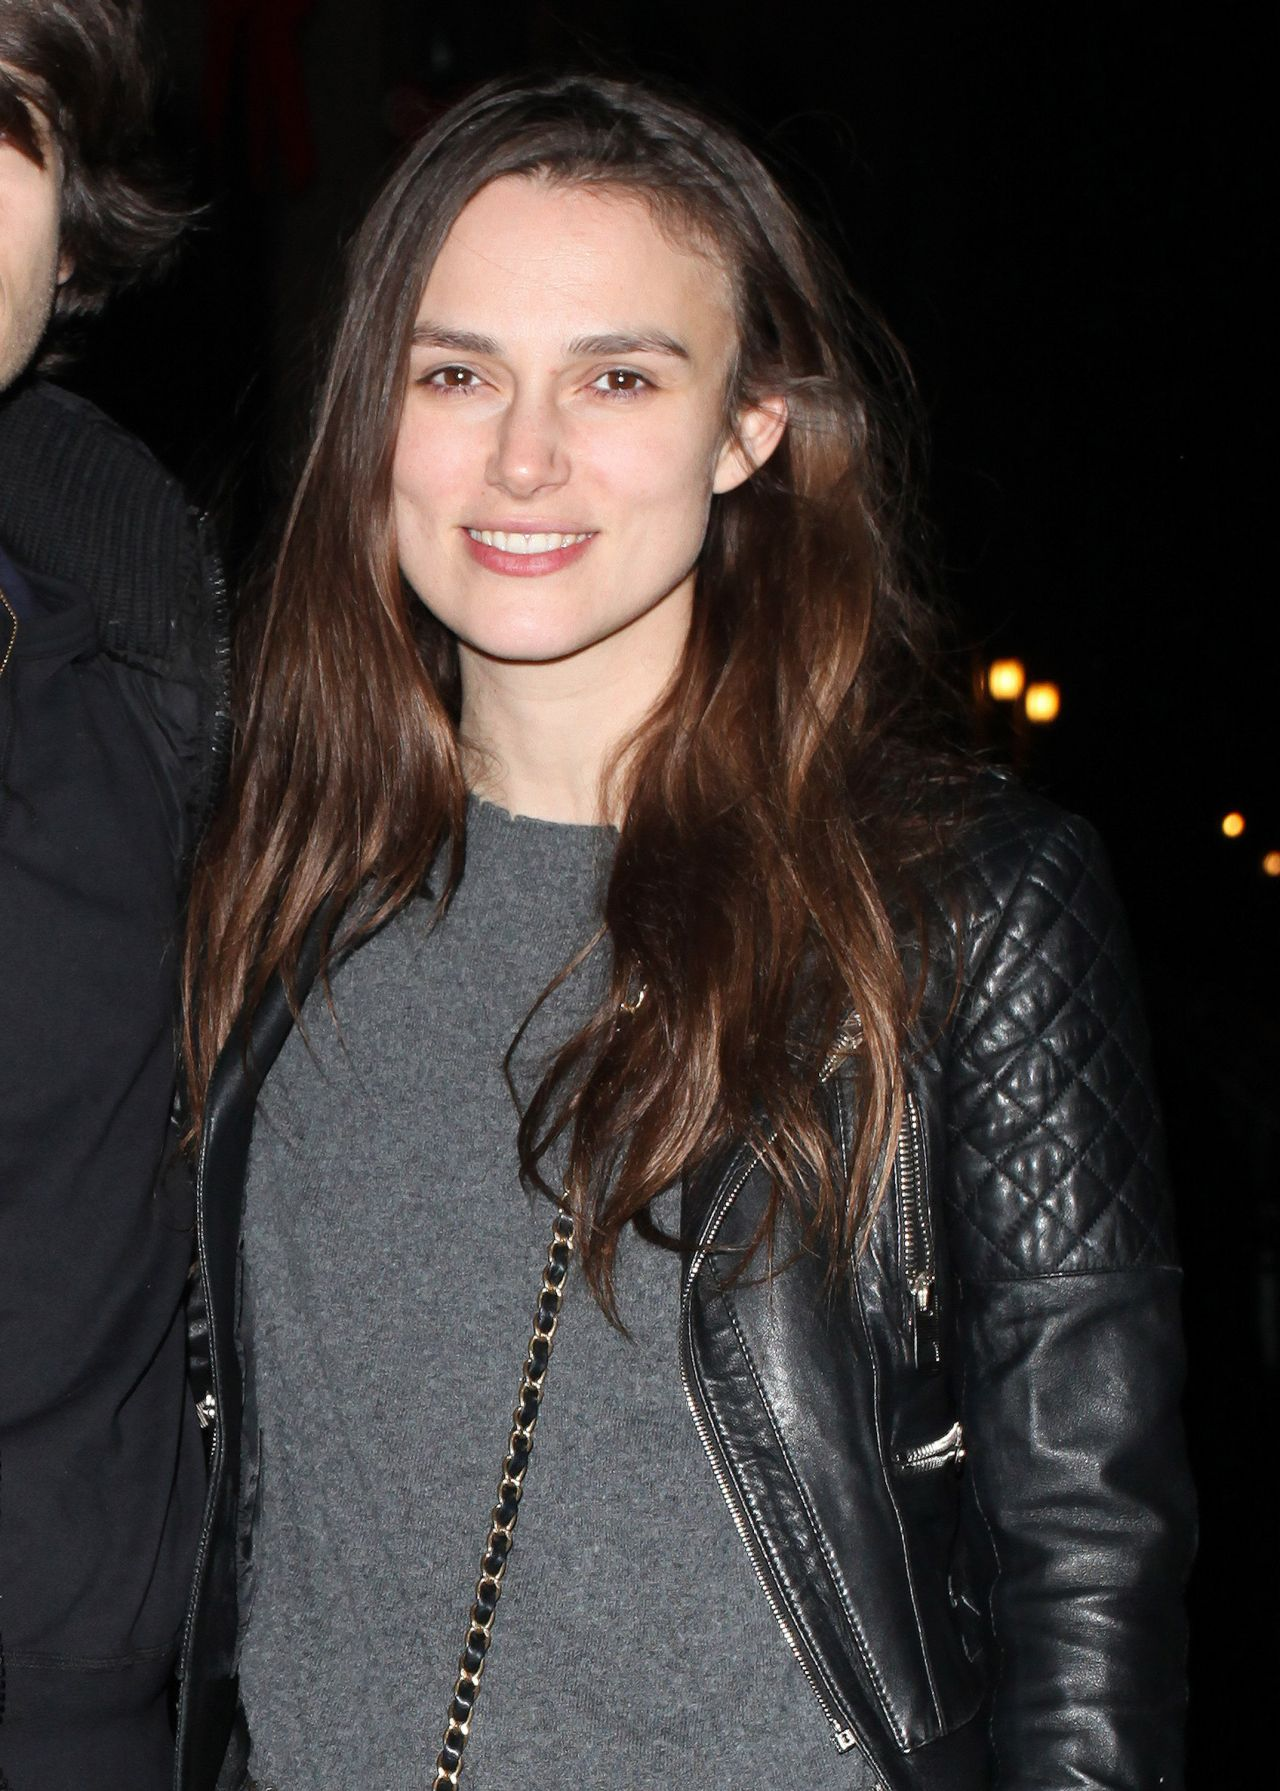 Keira Knightley - Out in New York City, NY February 2016 Keira Knightley